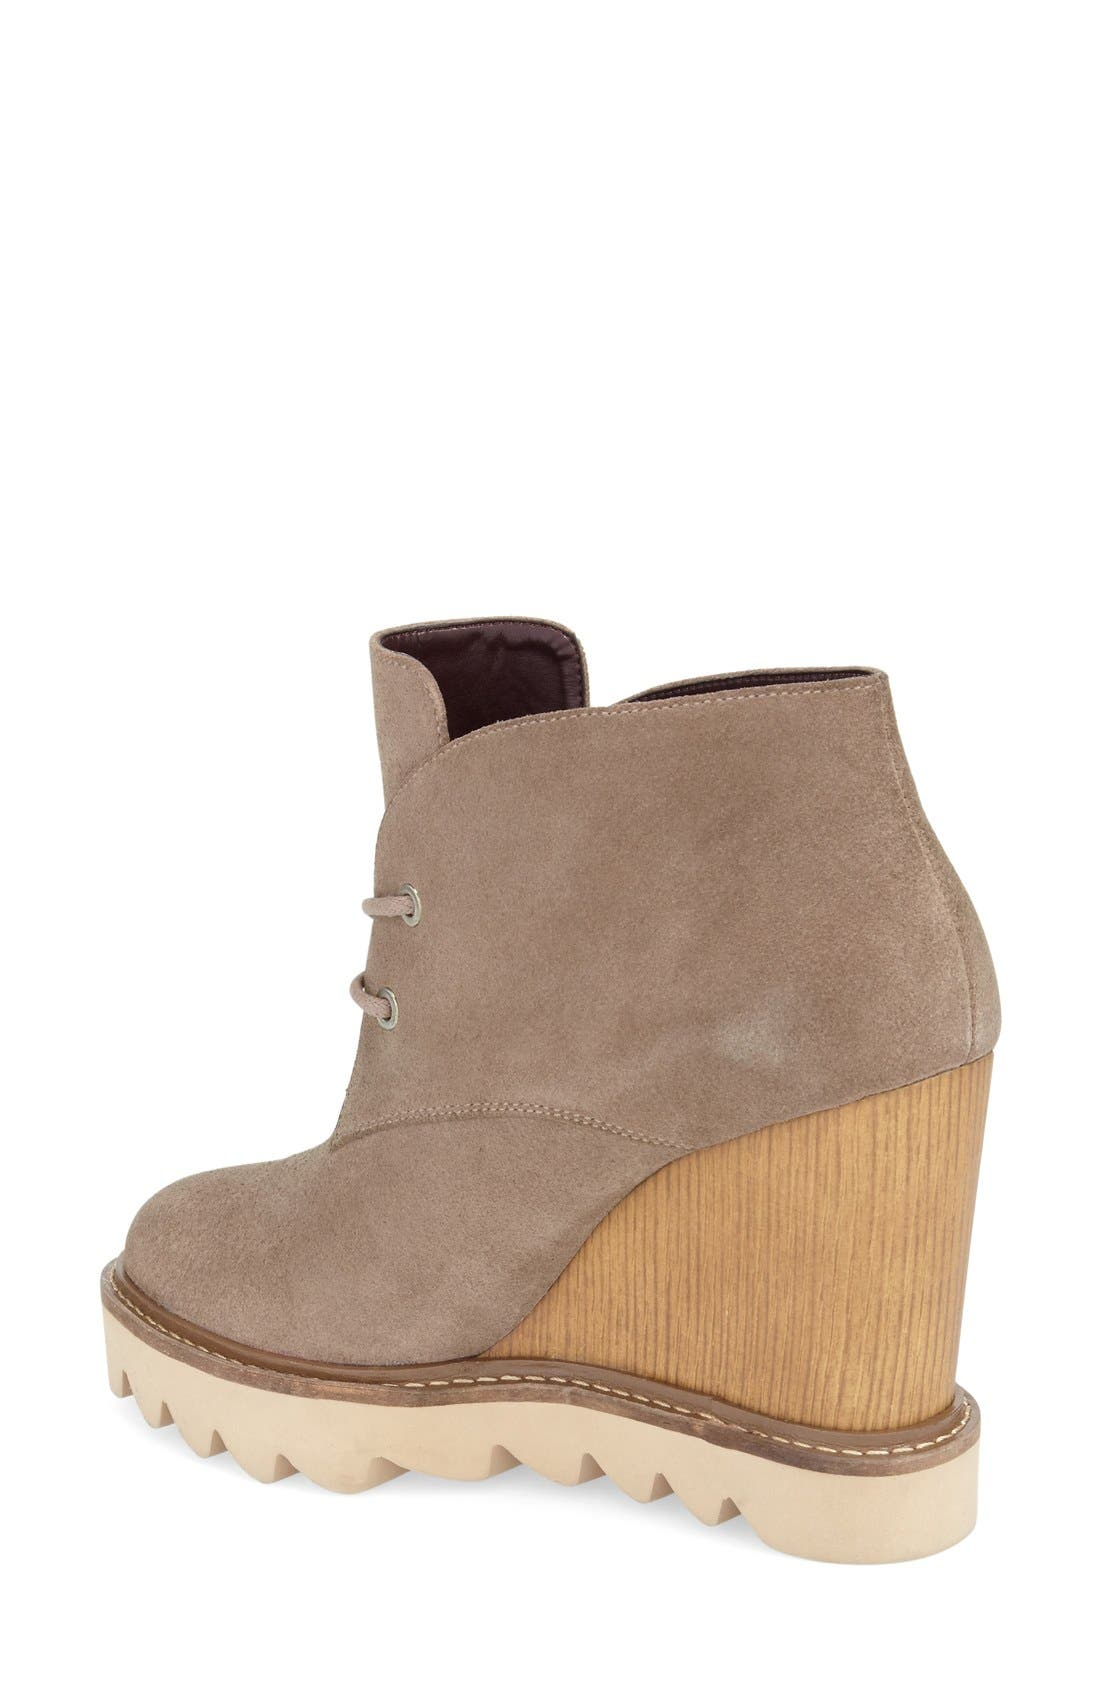 Alternate Image 2  - BCBGeneration 'Nariska' Wedge Bootie (Women)